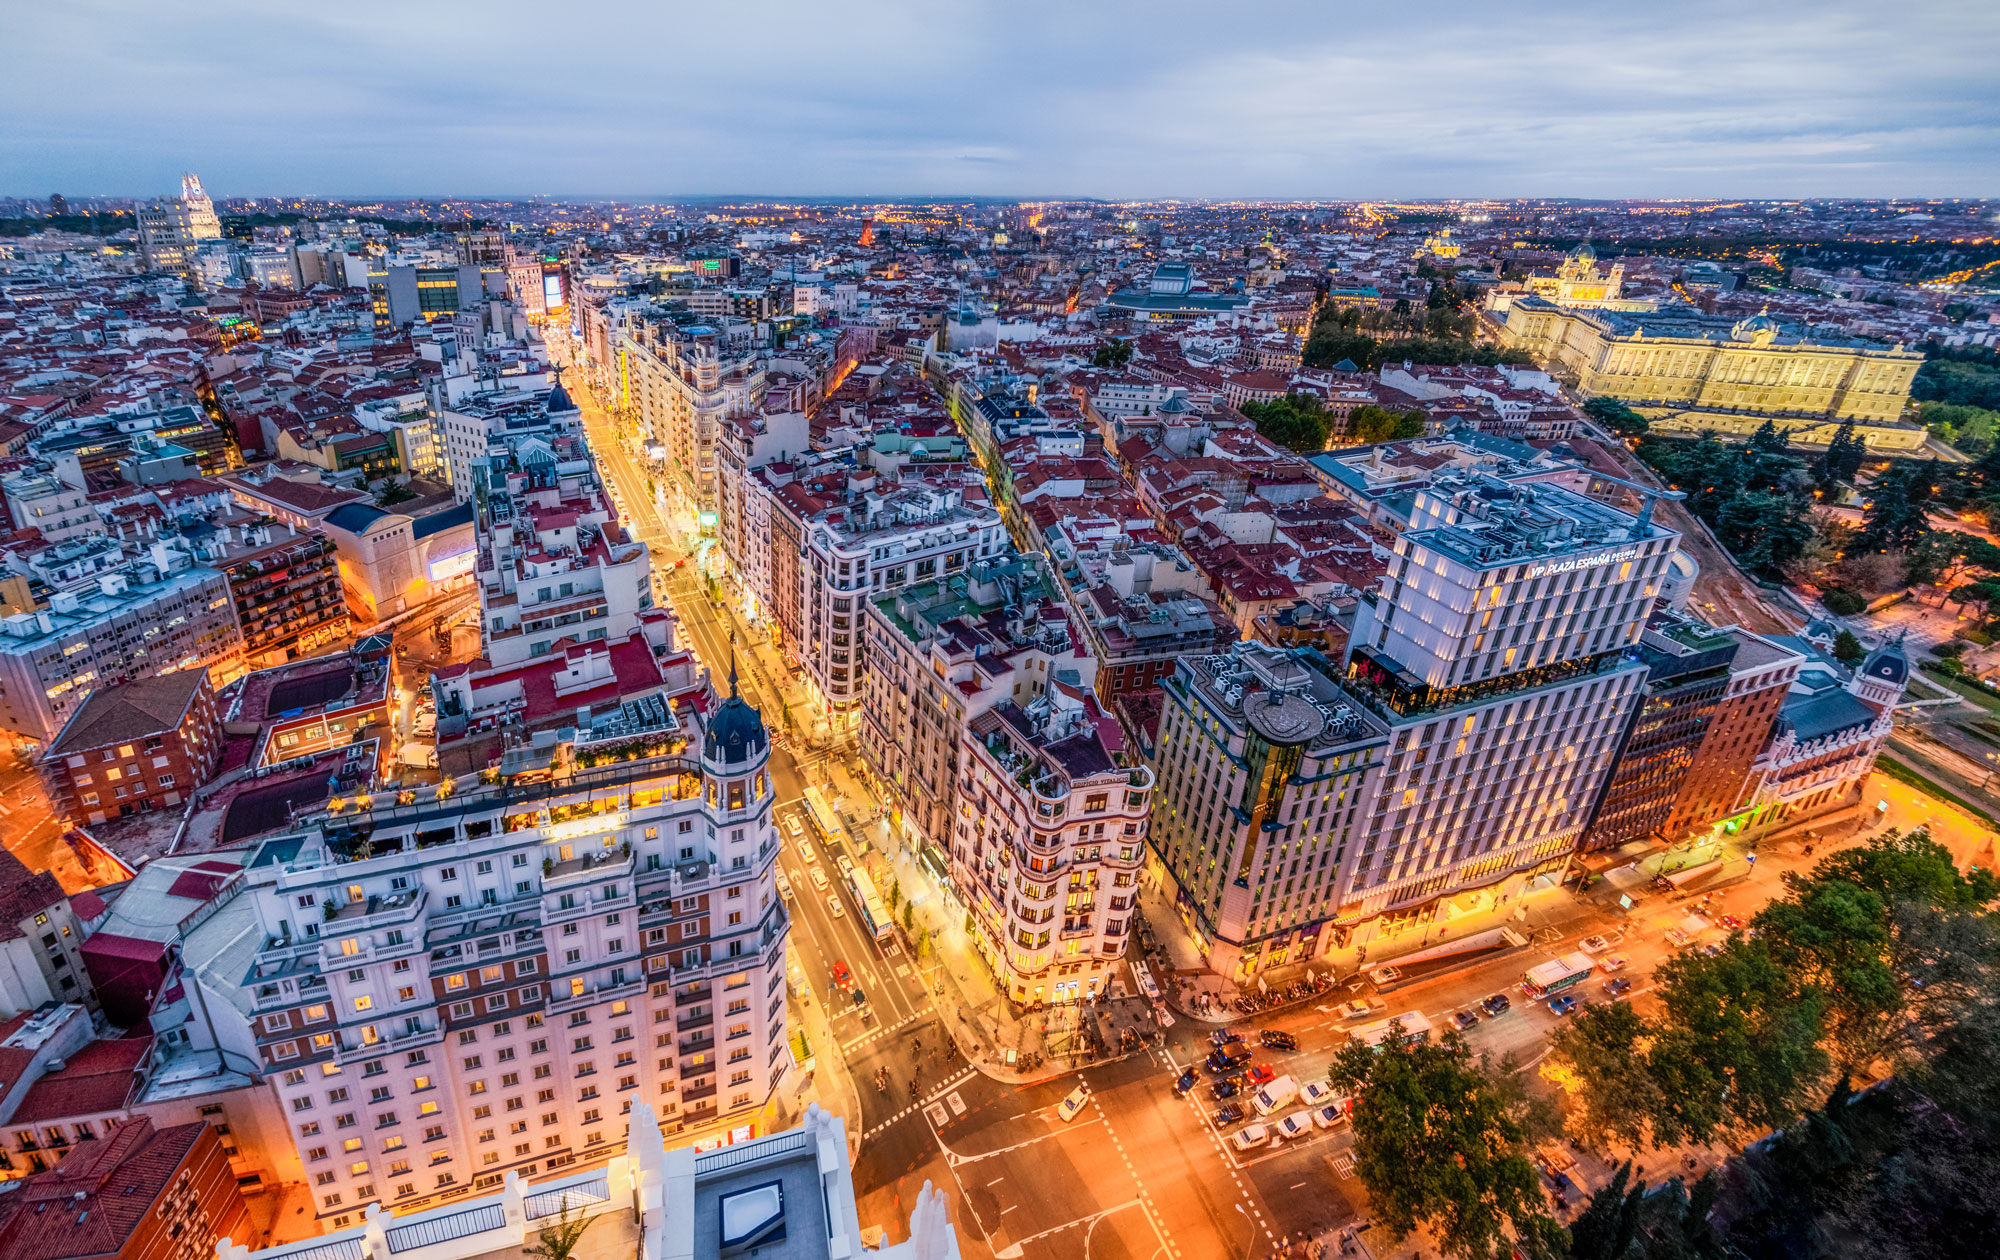 Panoramic aerial view of downtown Madrid at sunset